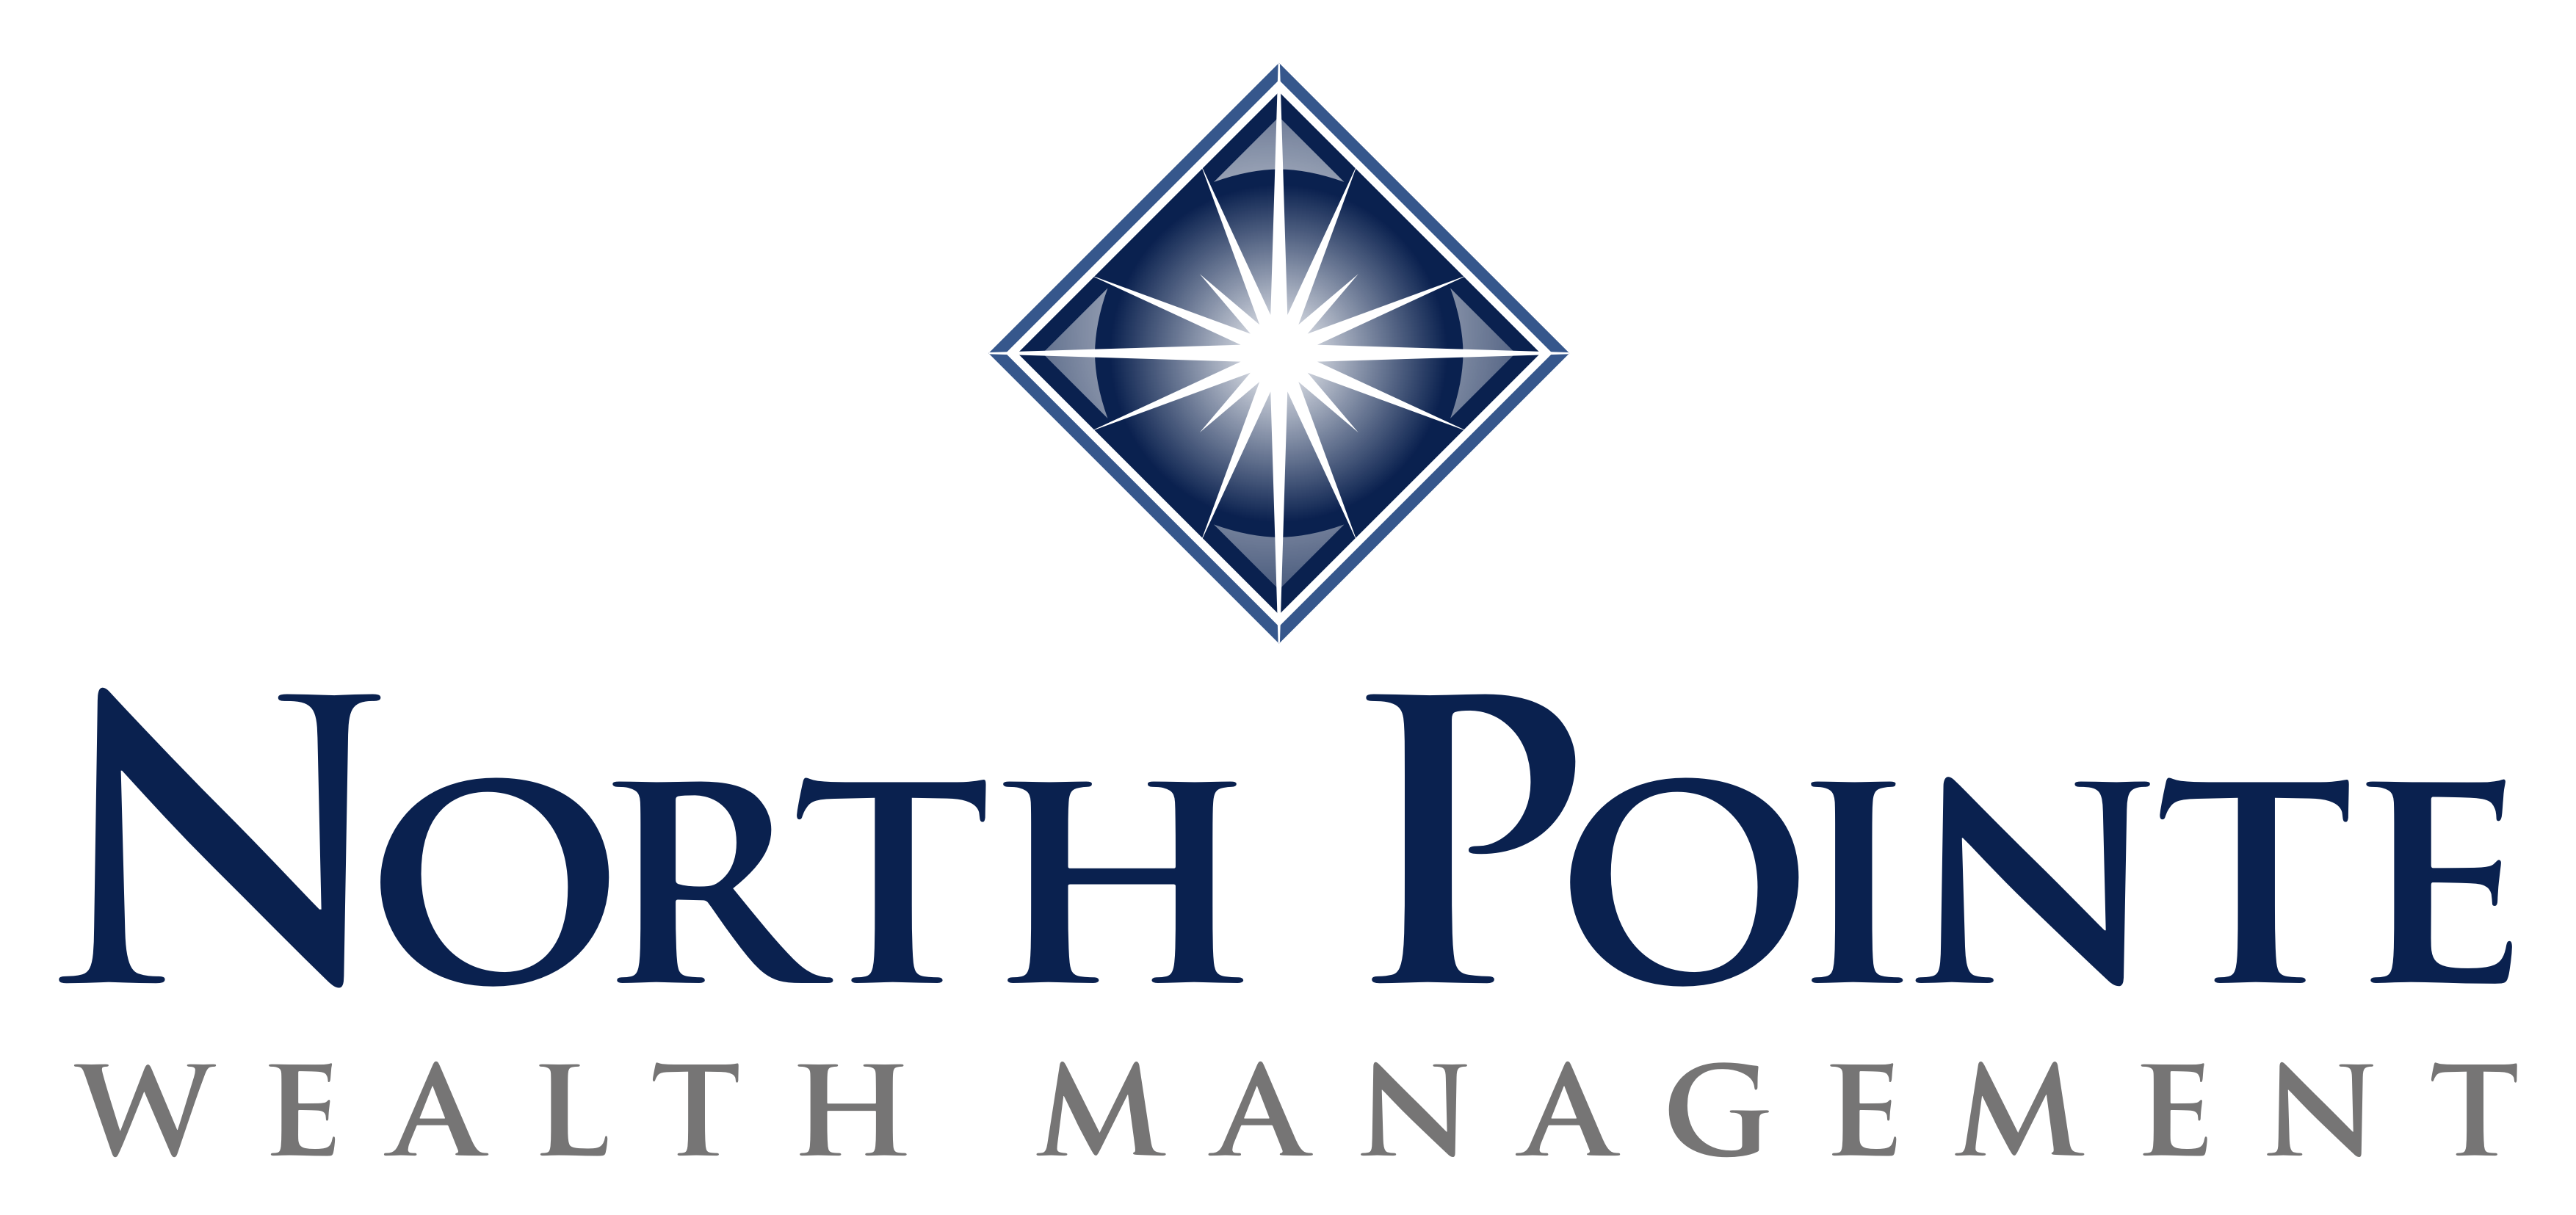 North Pointe Wealth Management